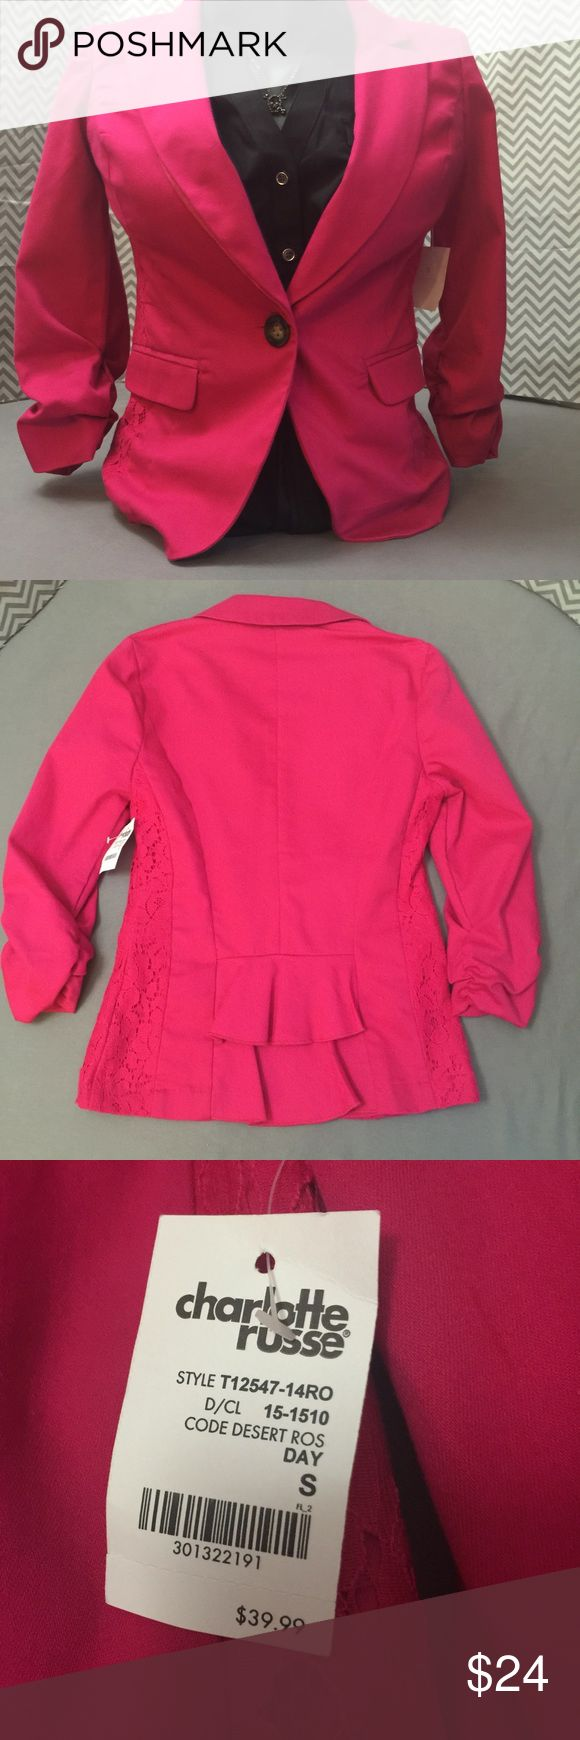 HOT! Blazer by Charlotte Russe, NWT, Size S This thing is seriously hot. The details on this are amazing. Lace paneling on the sides, ruffles on the back, rouched 3/4 length sleeves, just enough spandex to make it move with you without feeling boxy, and in this phenomenal desert rose color that's bright and popping without making you feel like back to the 80s! Please feel free to ask questions, submit an offer, or bundle for added savings. No trades please. Thank you…